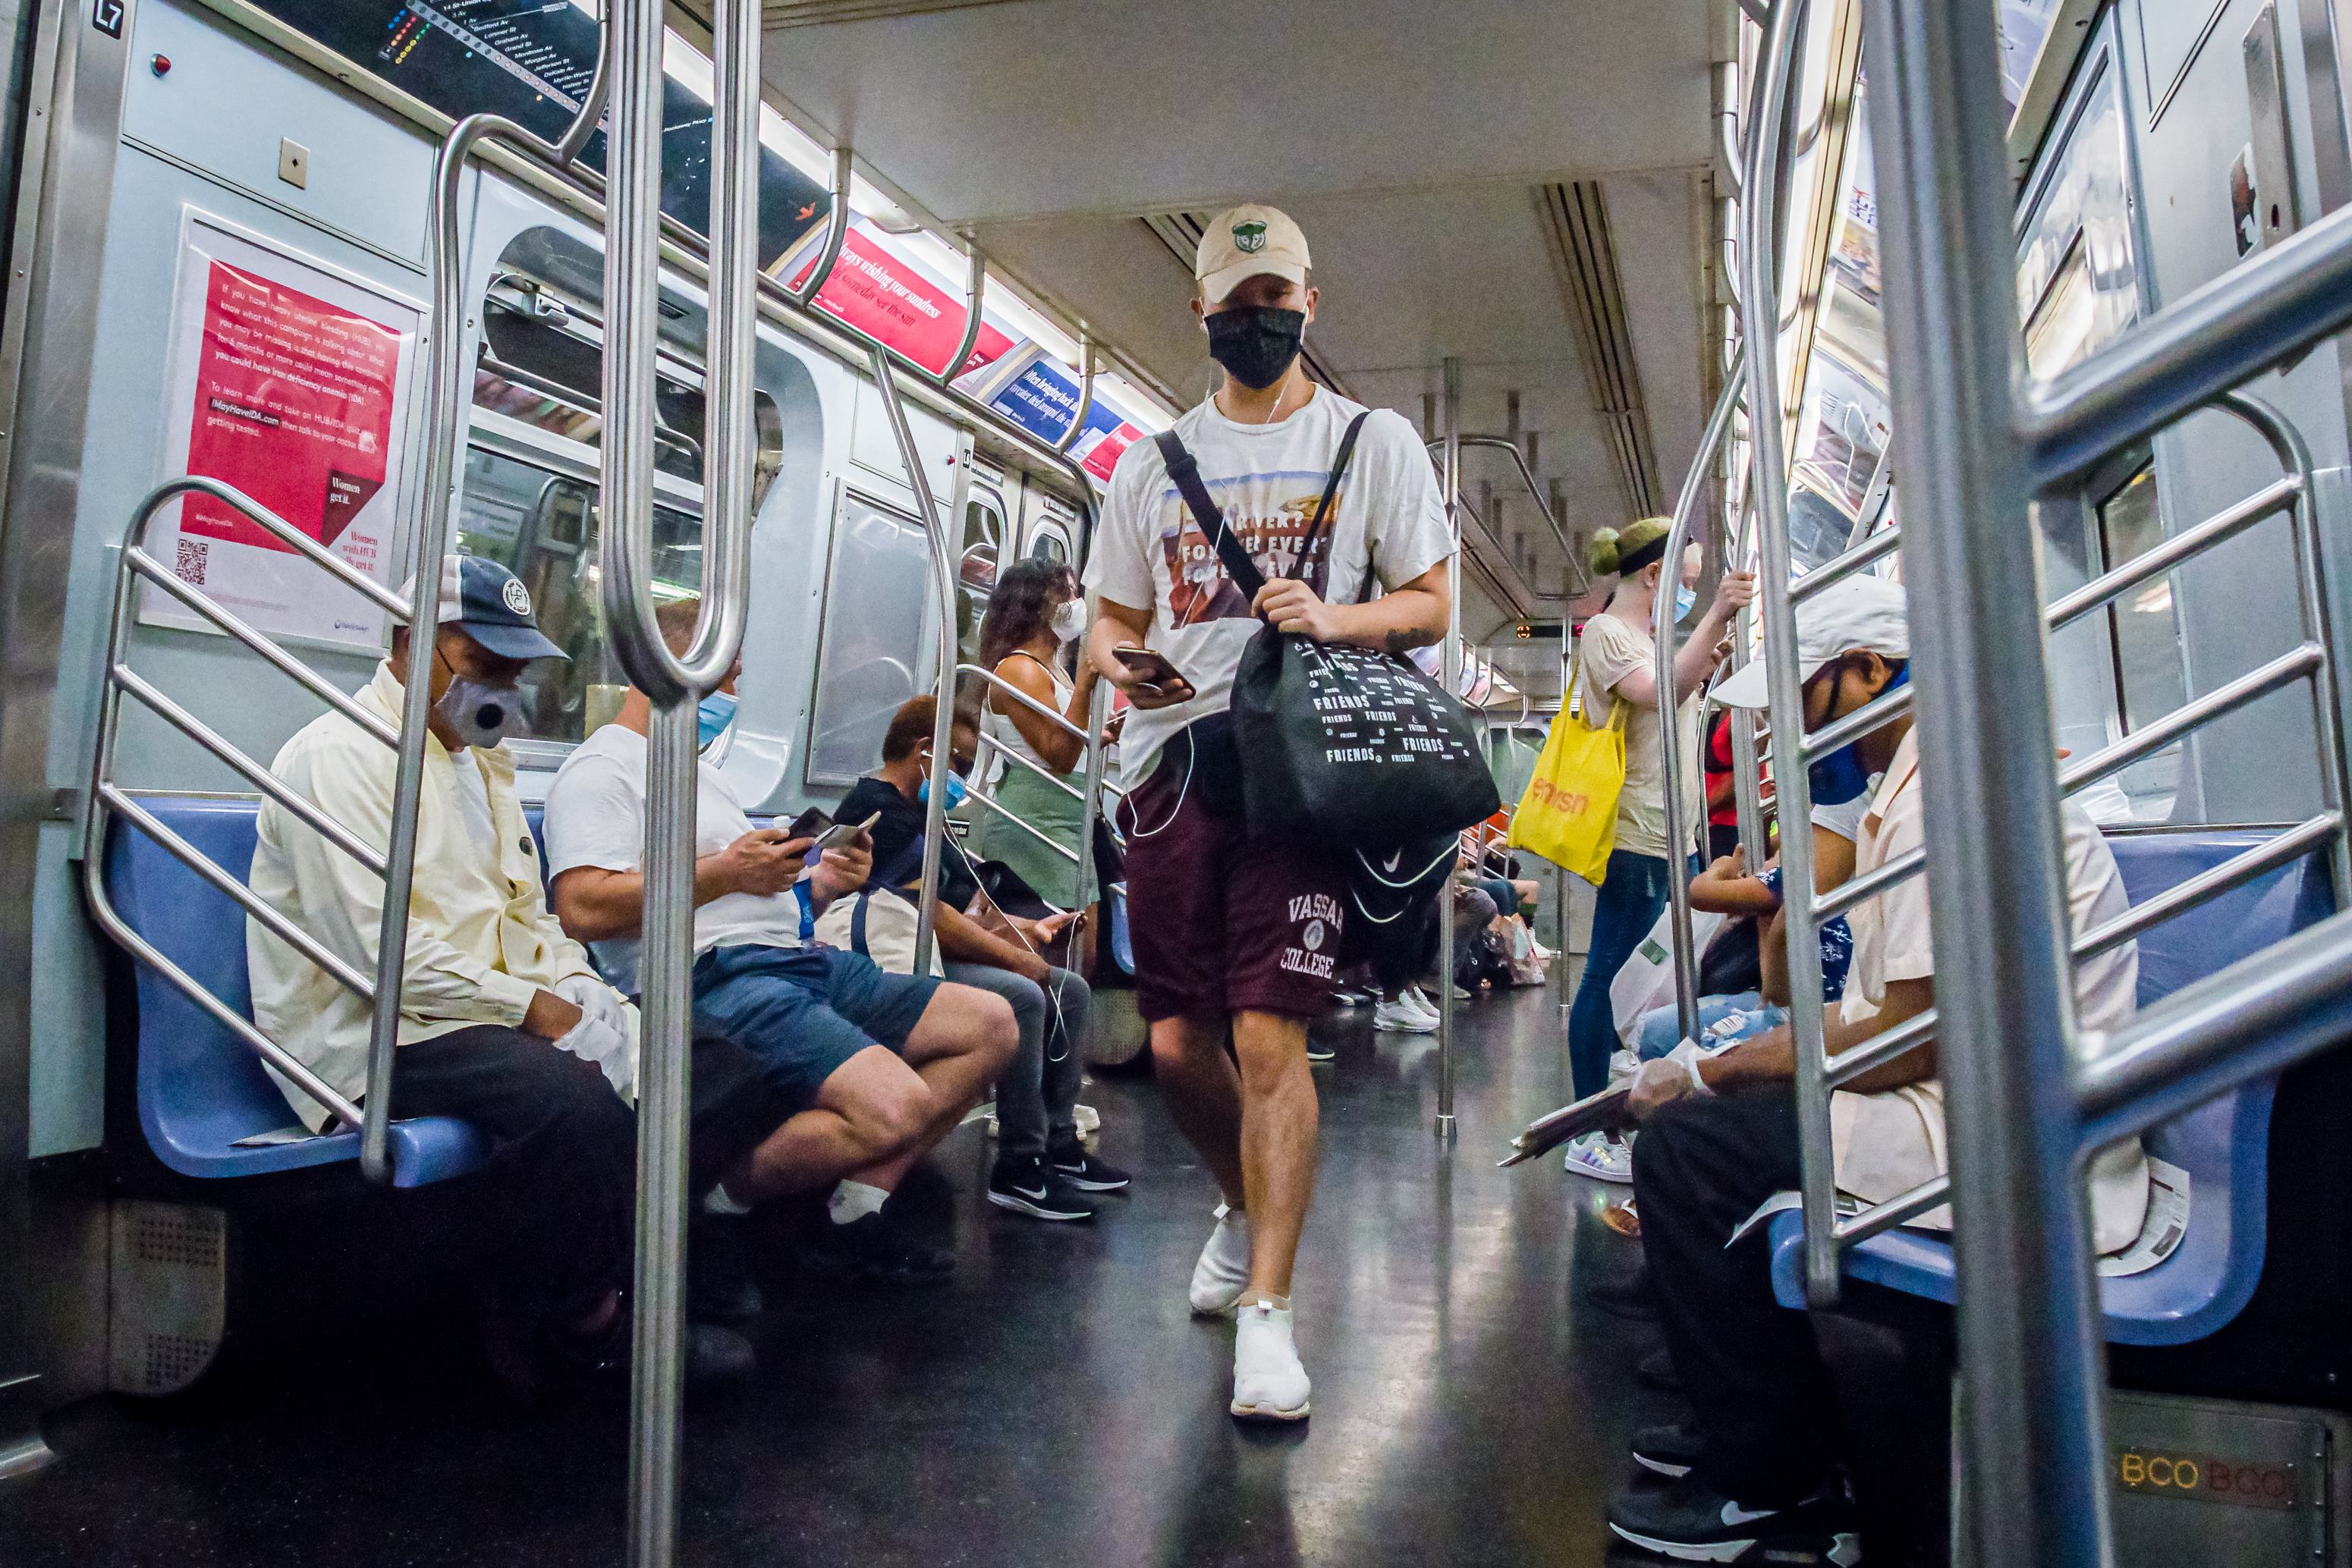 TLMD mascarillas subway 91420 GettyImages 1227805388.'